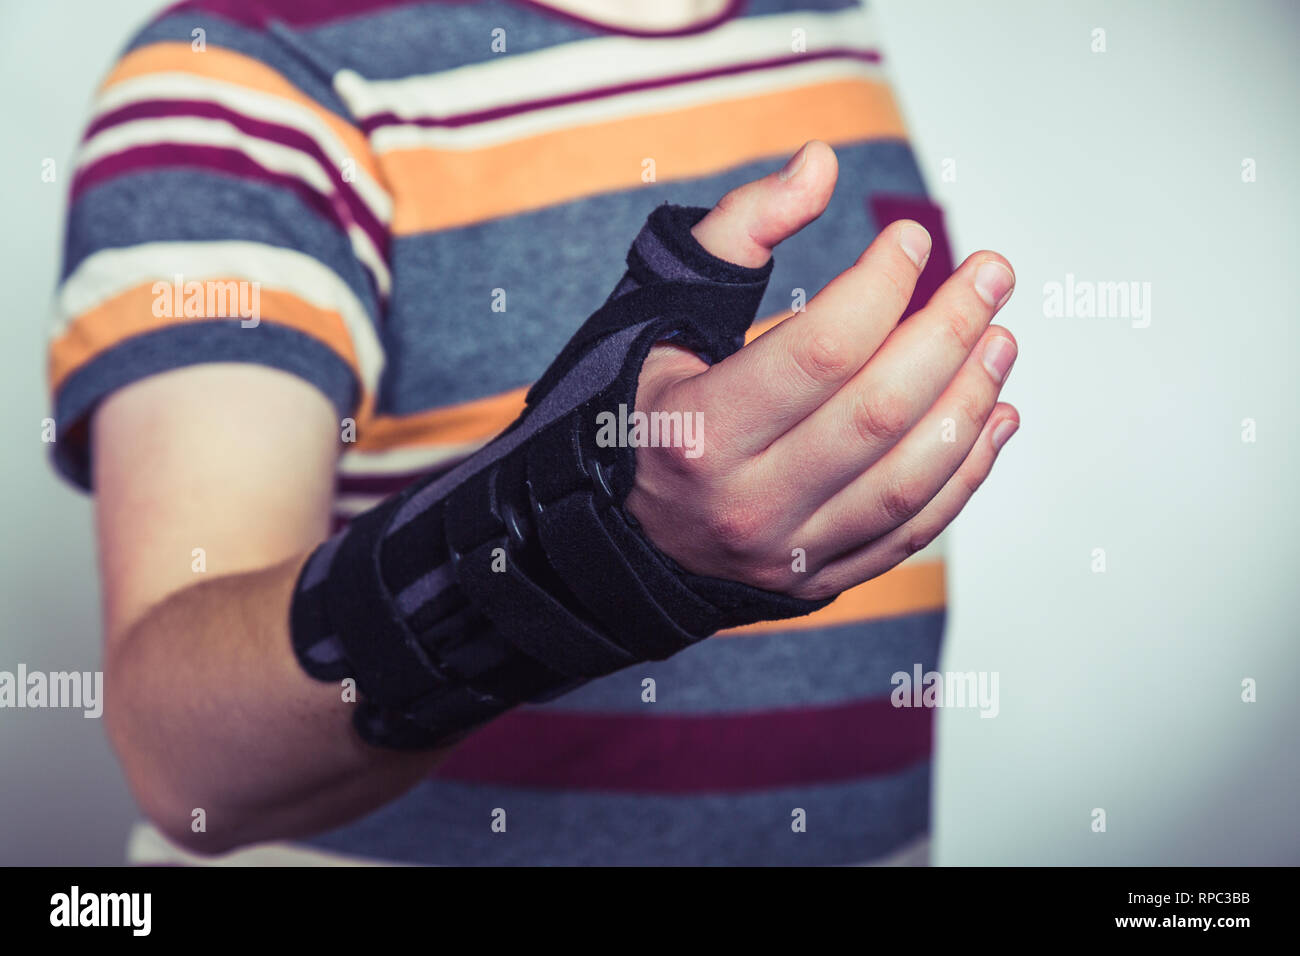 Man with hand in orthopedic black orthosis - Stock Image